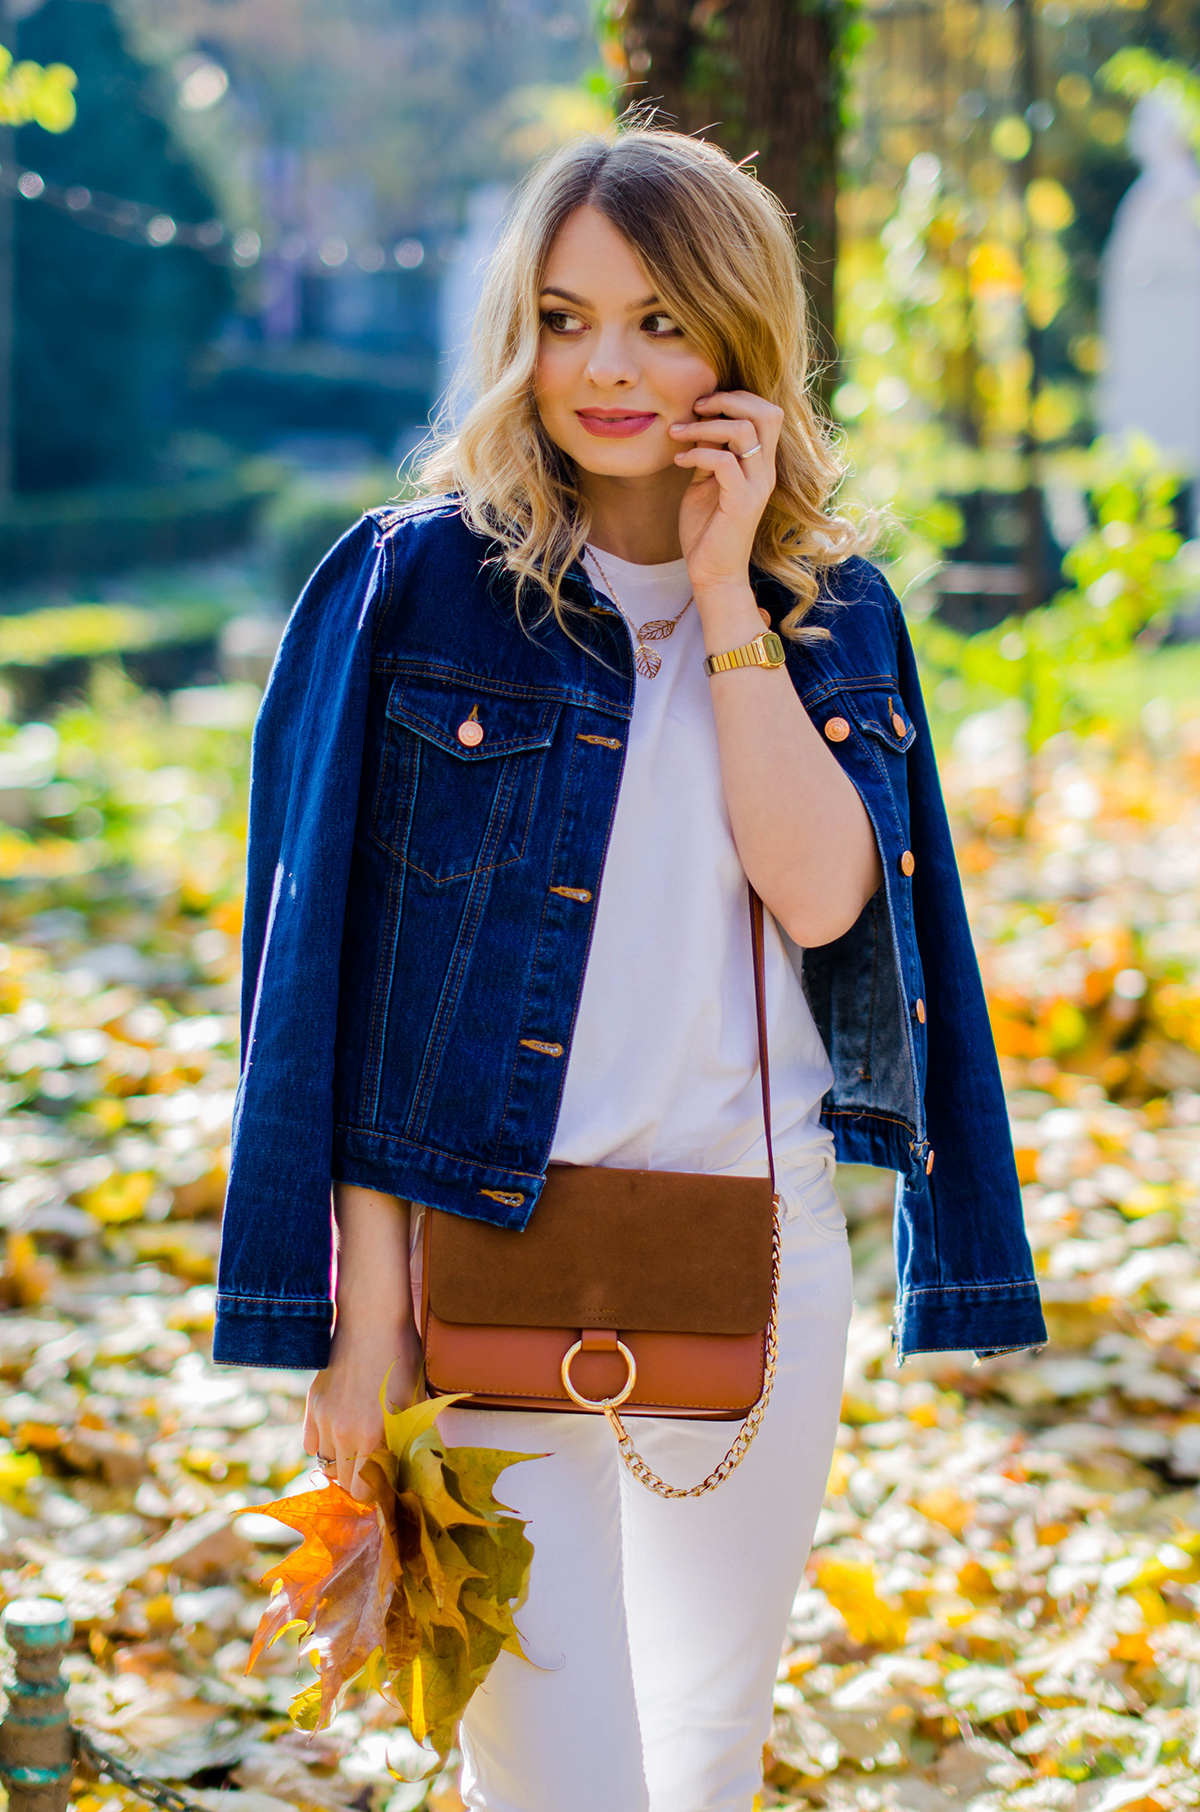 ALL-WHITE-OUTFIT-DENIM-JACKET-CHLOE-BAG-AUTUMN (2)